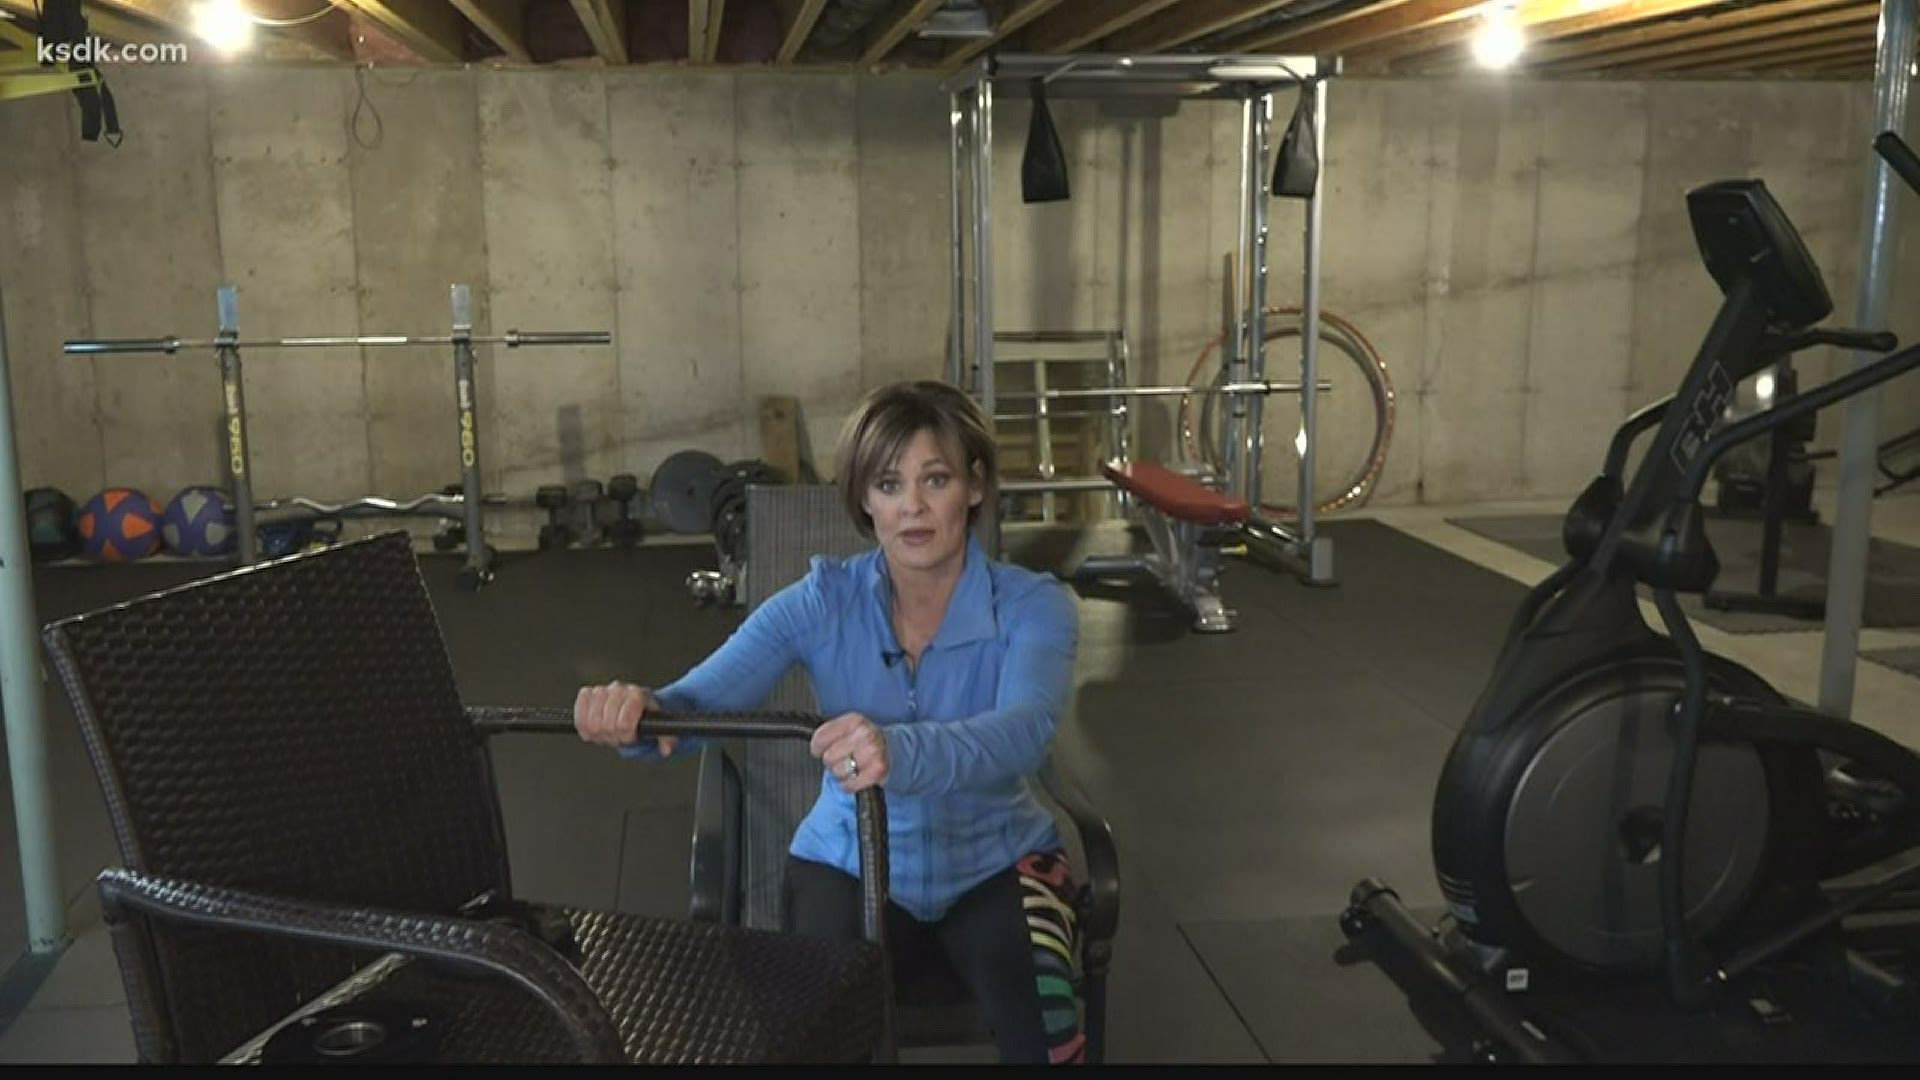 Virtual workouts | Tips from TISL's Monica Adams | ksdk.com